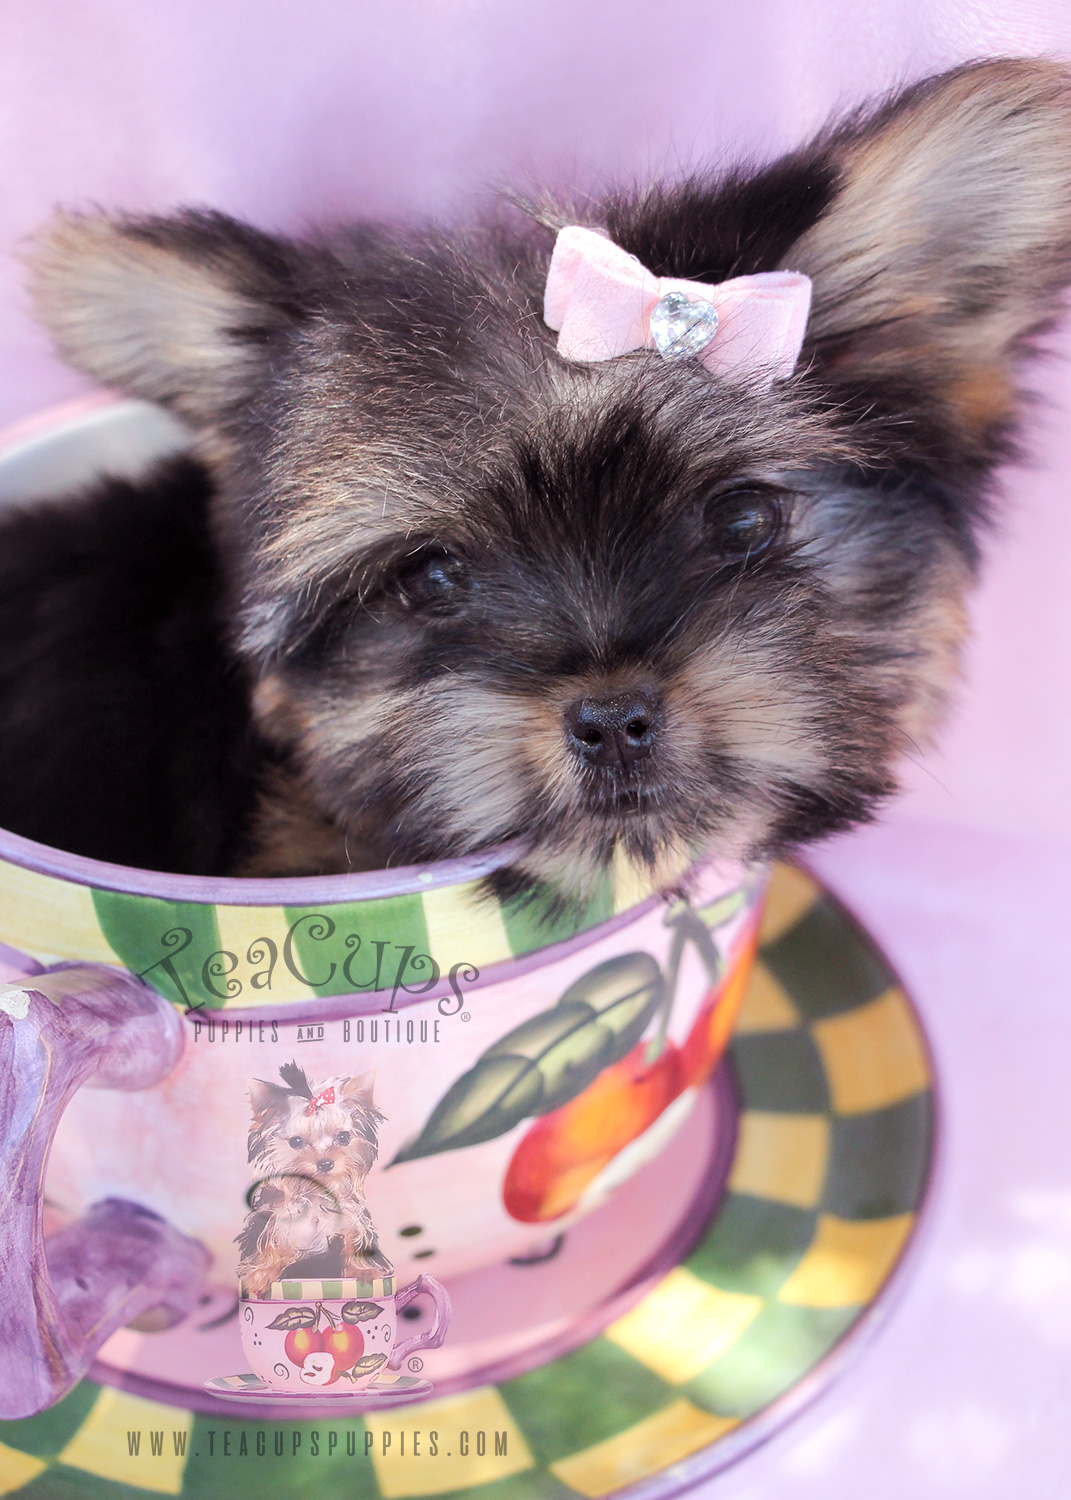 Yorkie puppies for sale in South Florida